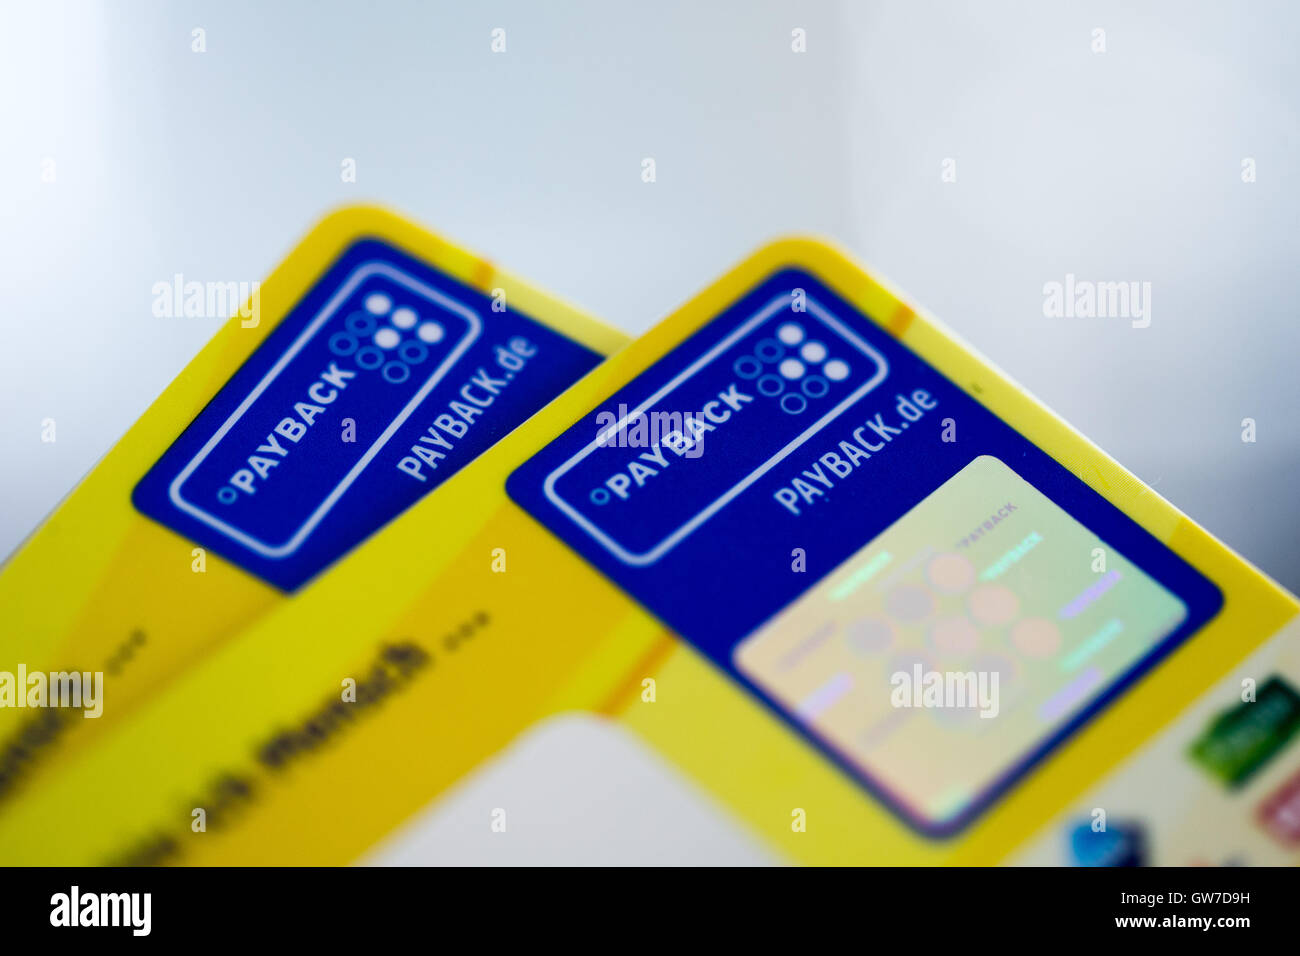 illustration 2 payback cards pictured on a table in duesseldorf germany 12 september 2016 photo rolf vennenbernddpaalamy live news